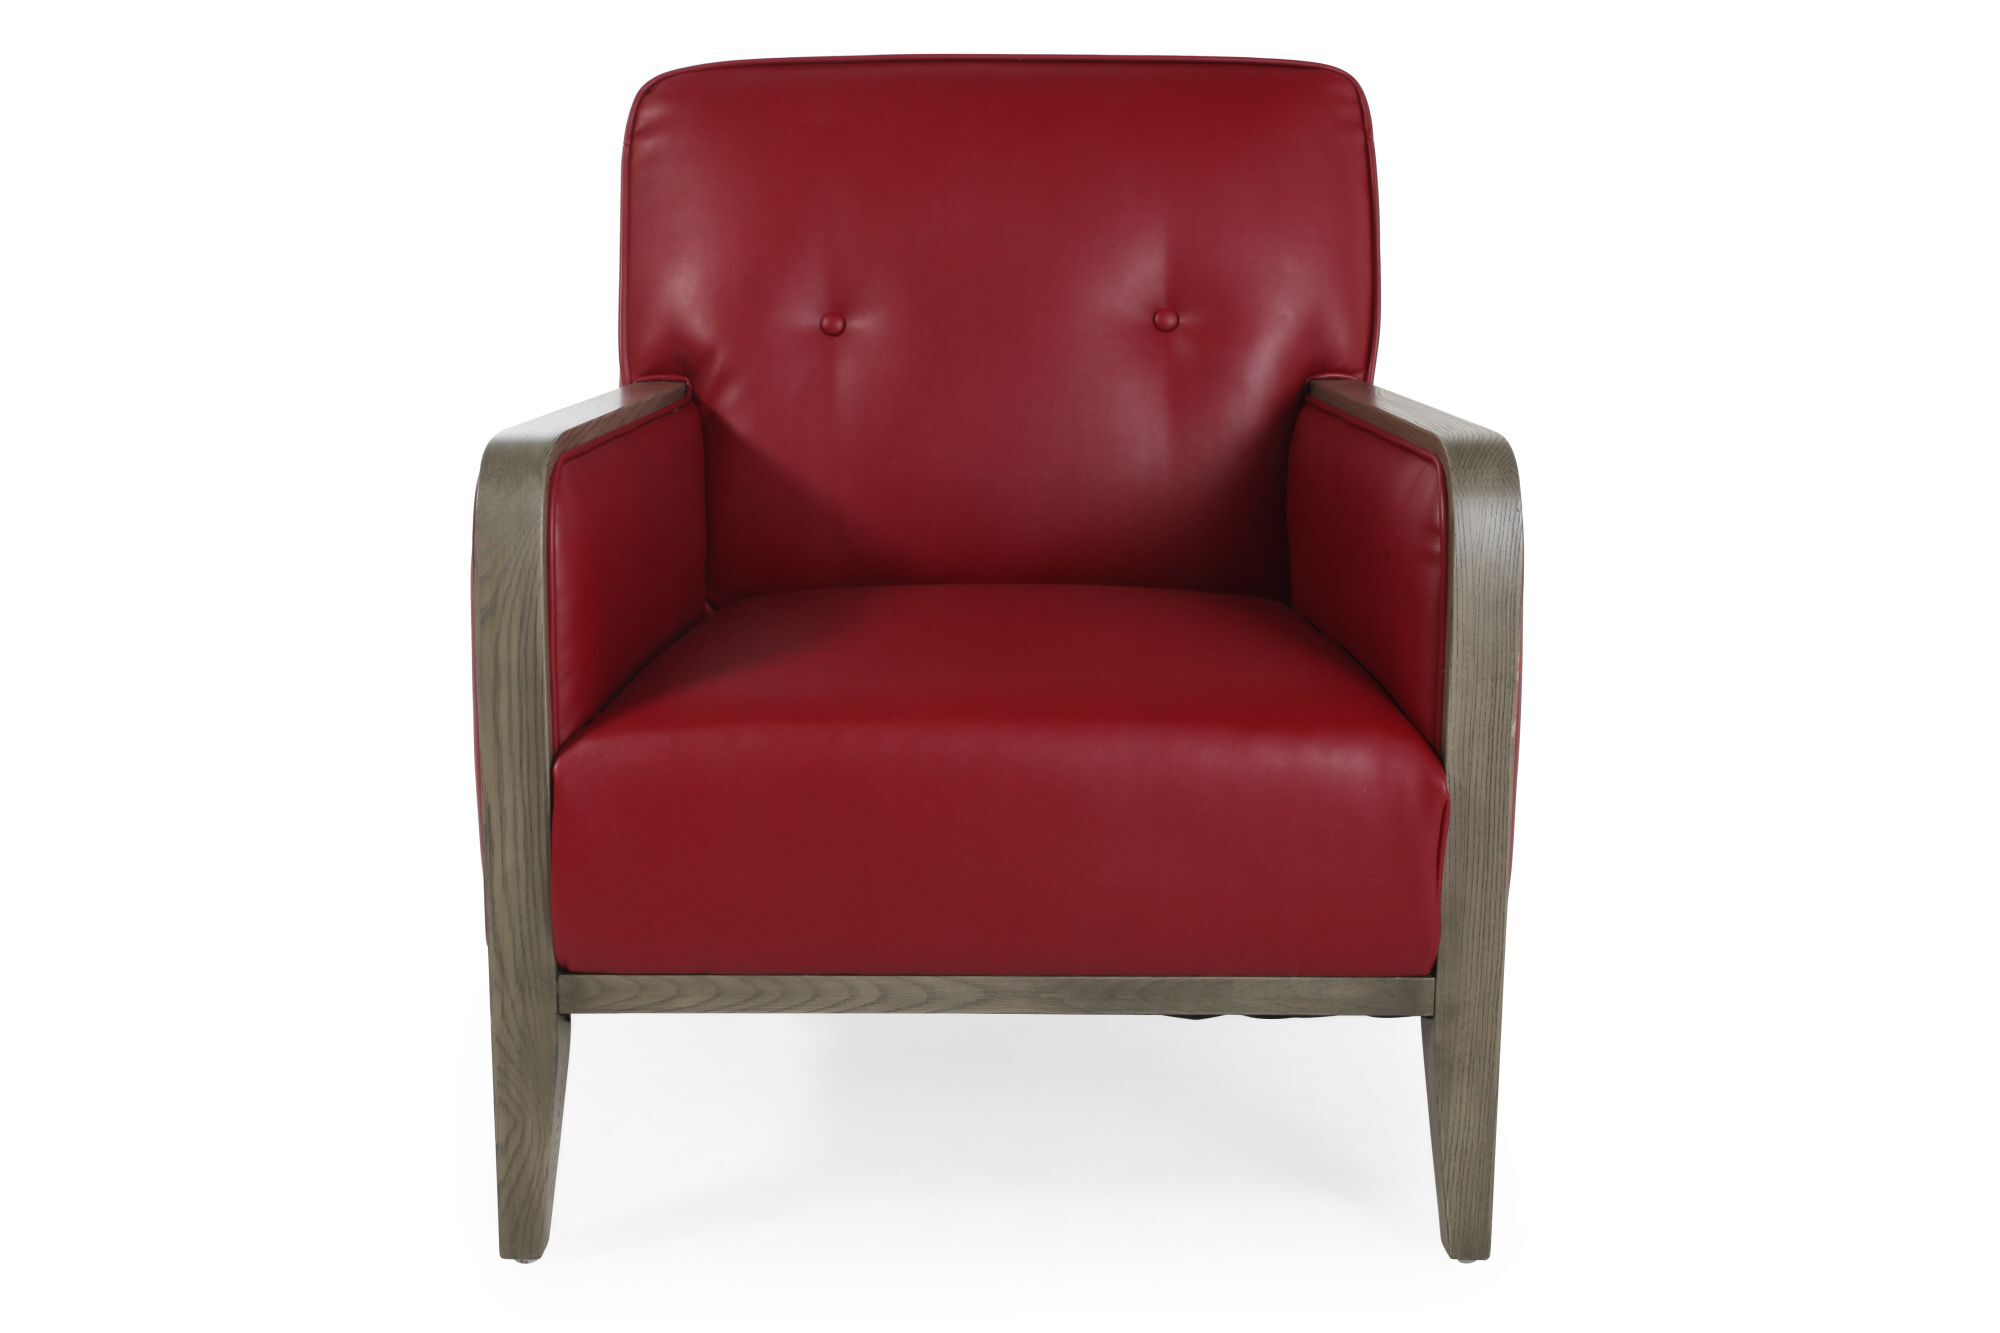 red leather sofas and chairs seth genuine power reclining sofa review boulevard accent chair mathis brothers furniture